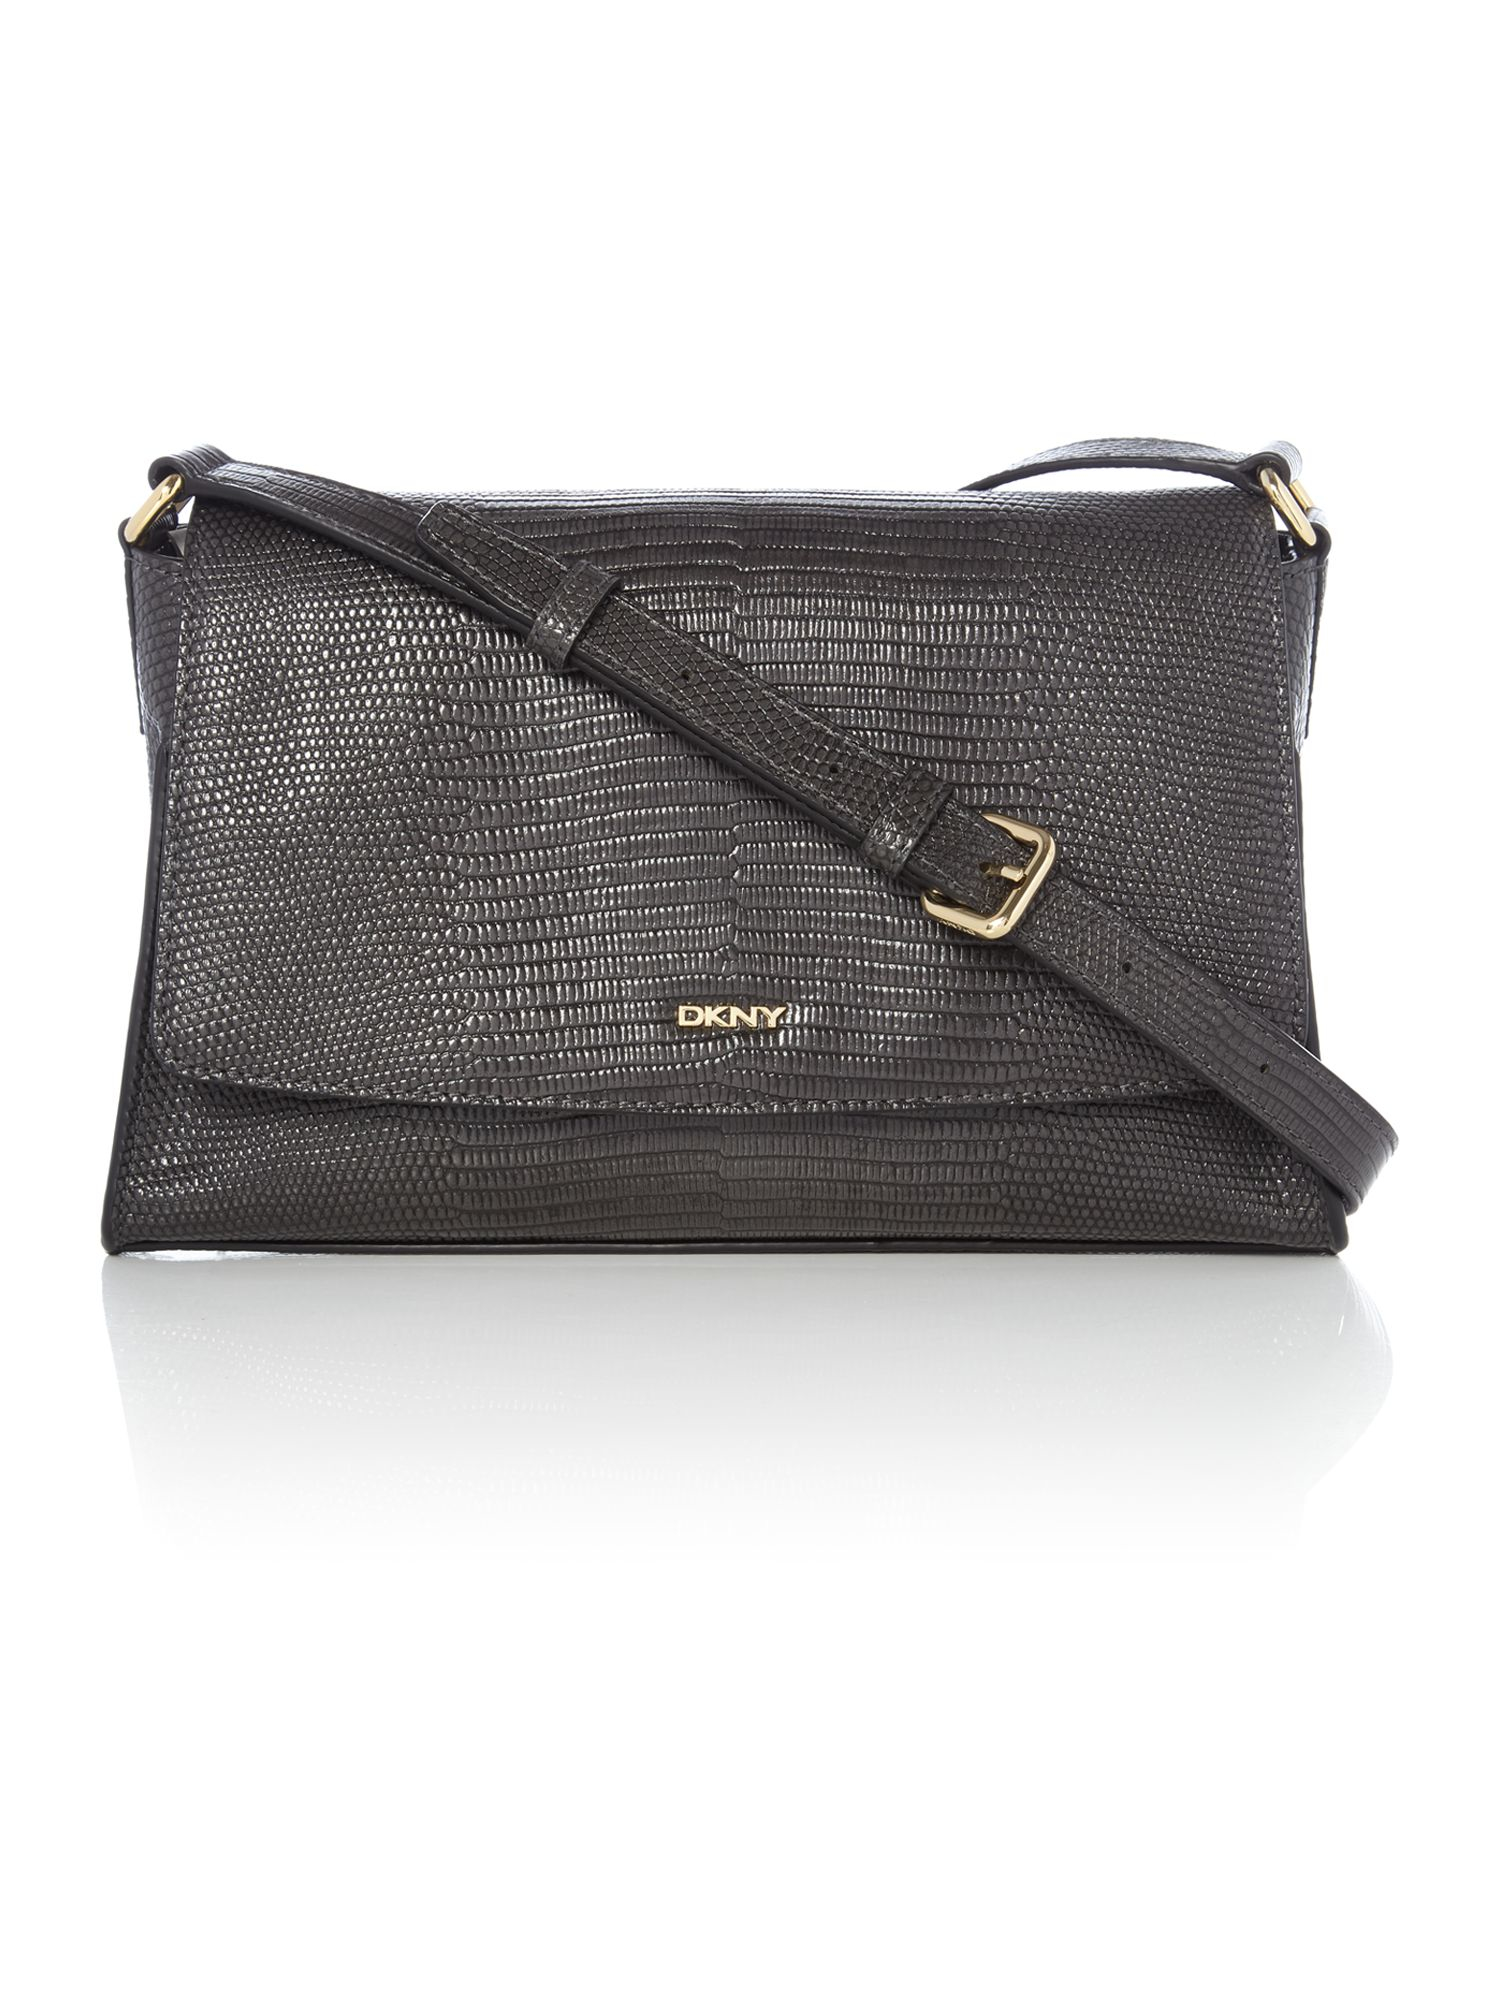 DKNY Leather Sutton Dark Grey Flap Over Cross Body Bag in Grey